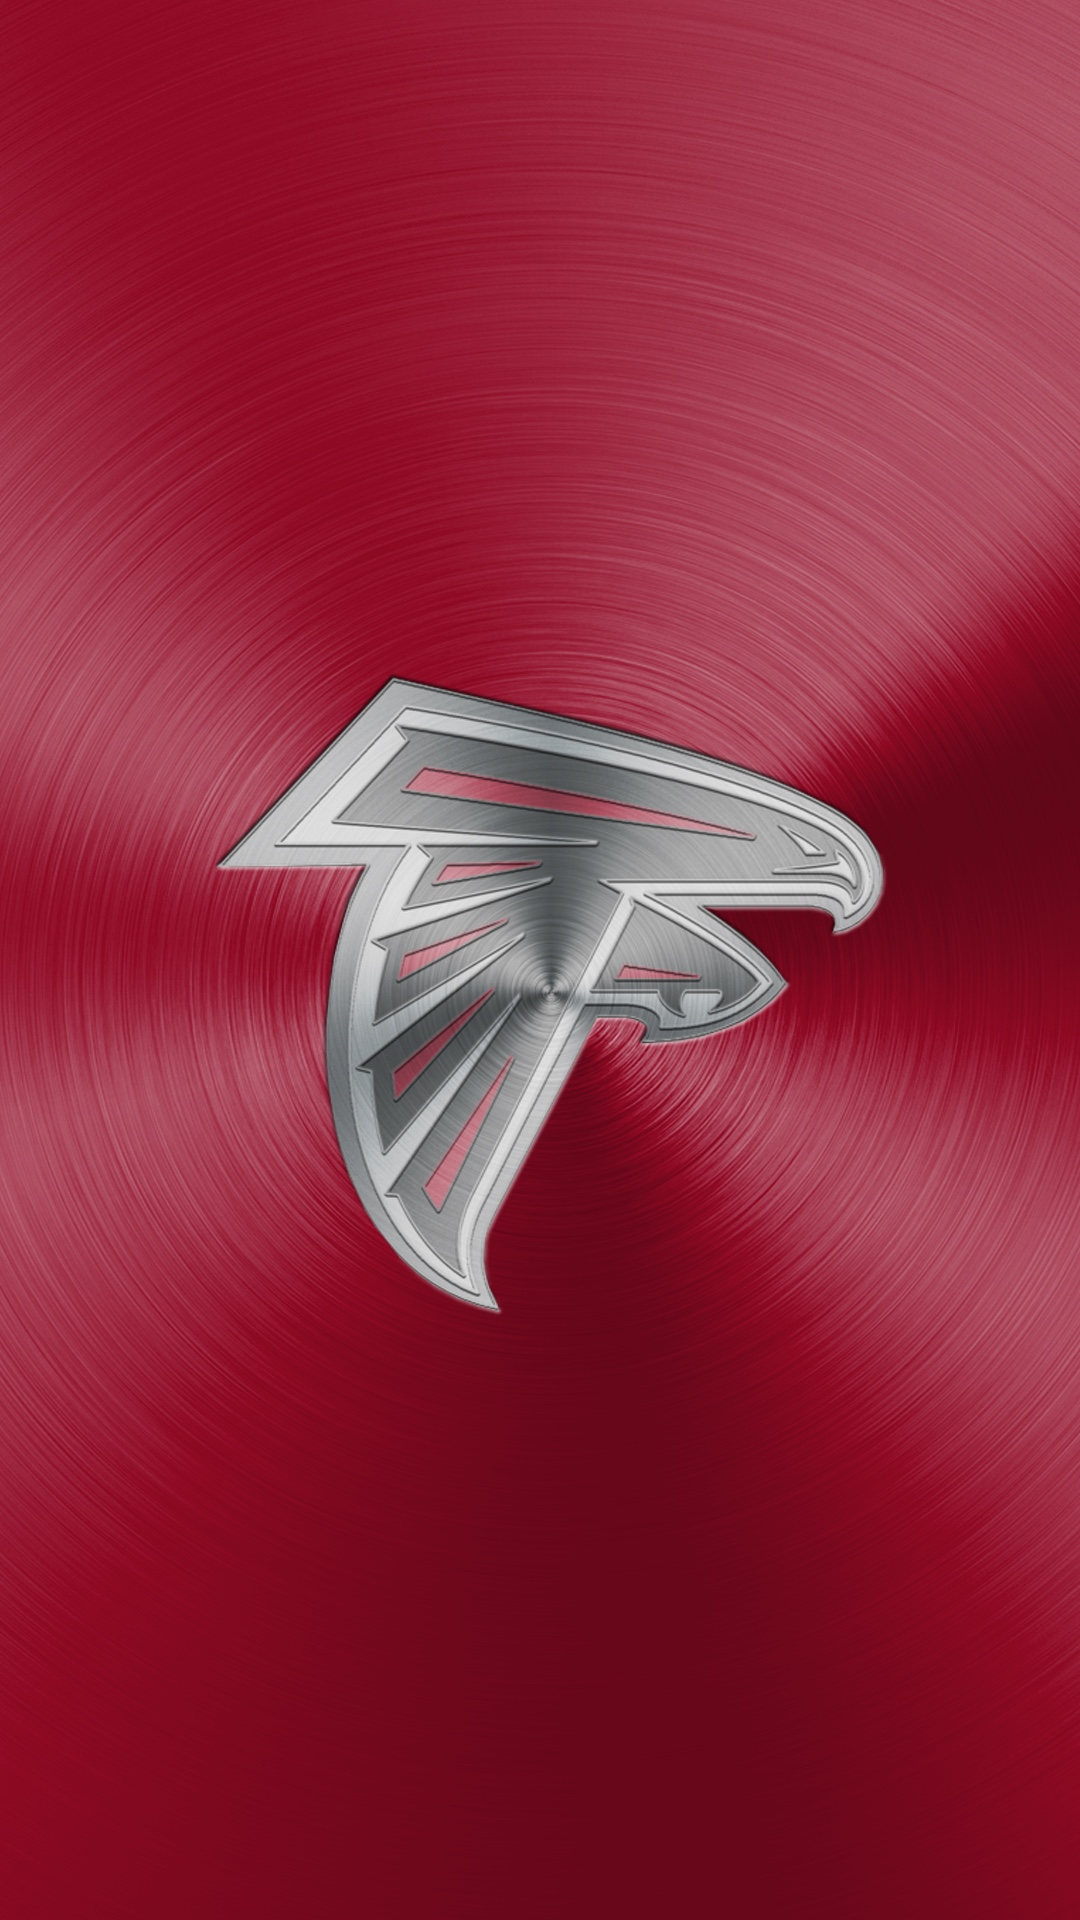 Picture Of Nike Basketball Quotes Hd Wallpapers Atlanta Falcons Hd Wallpaper For Android Pixelstalk Net